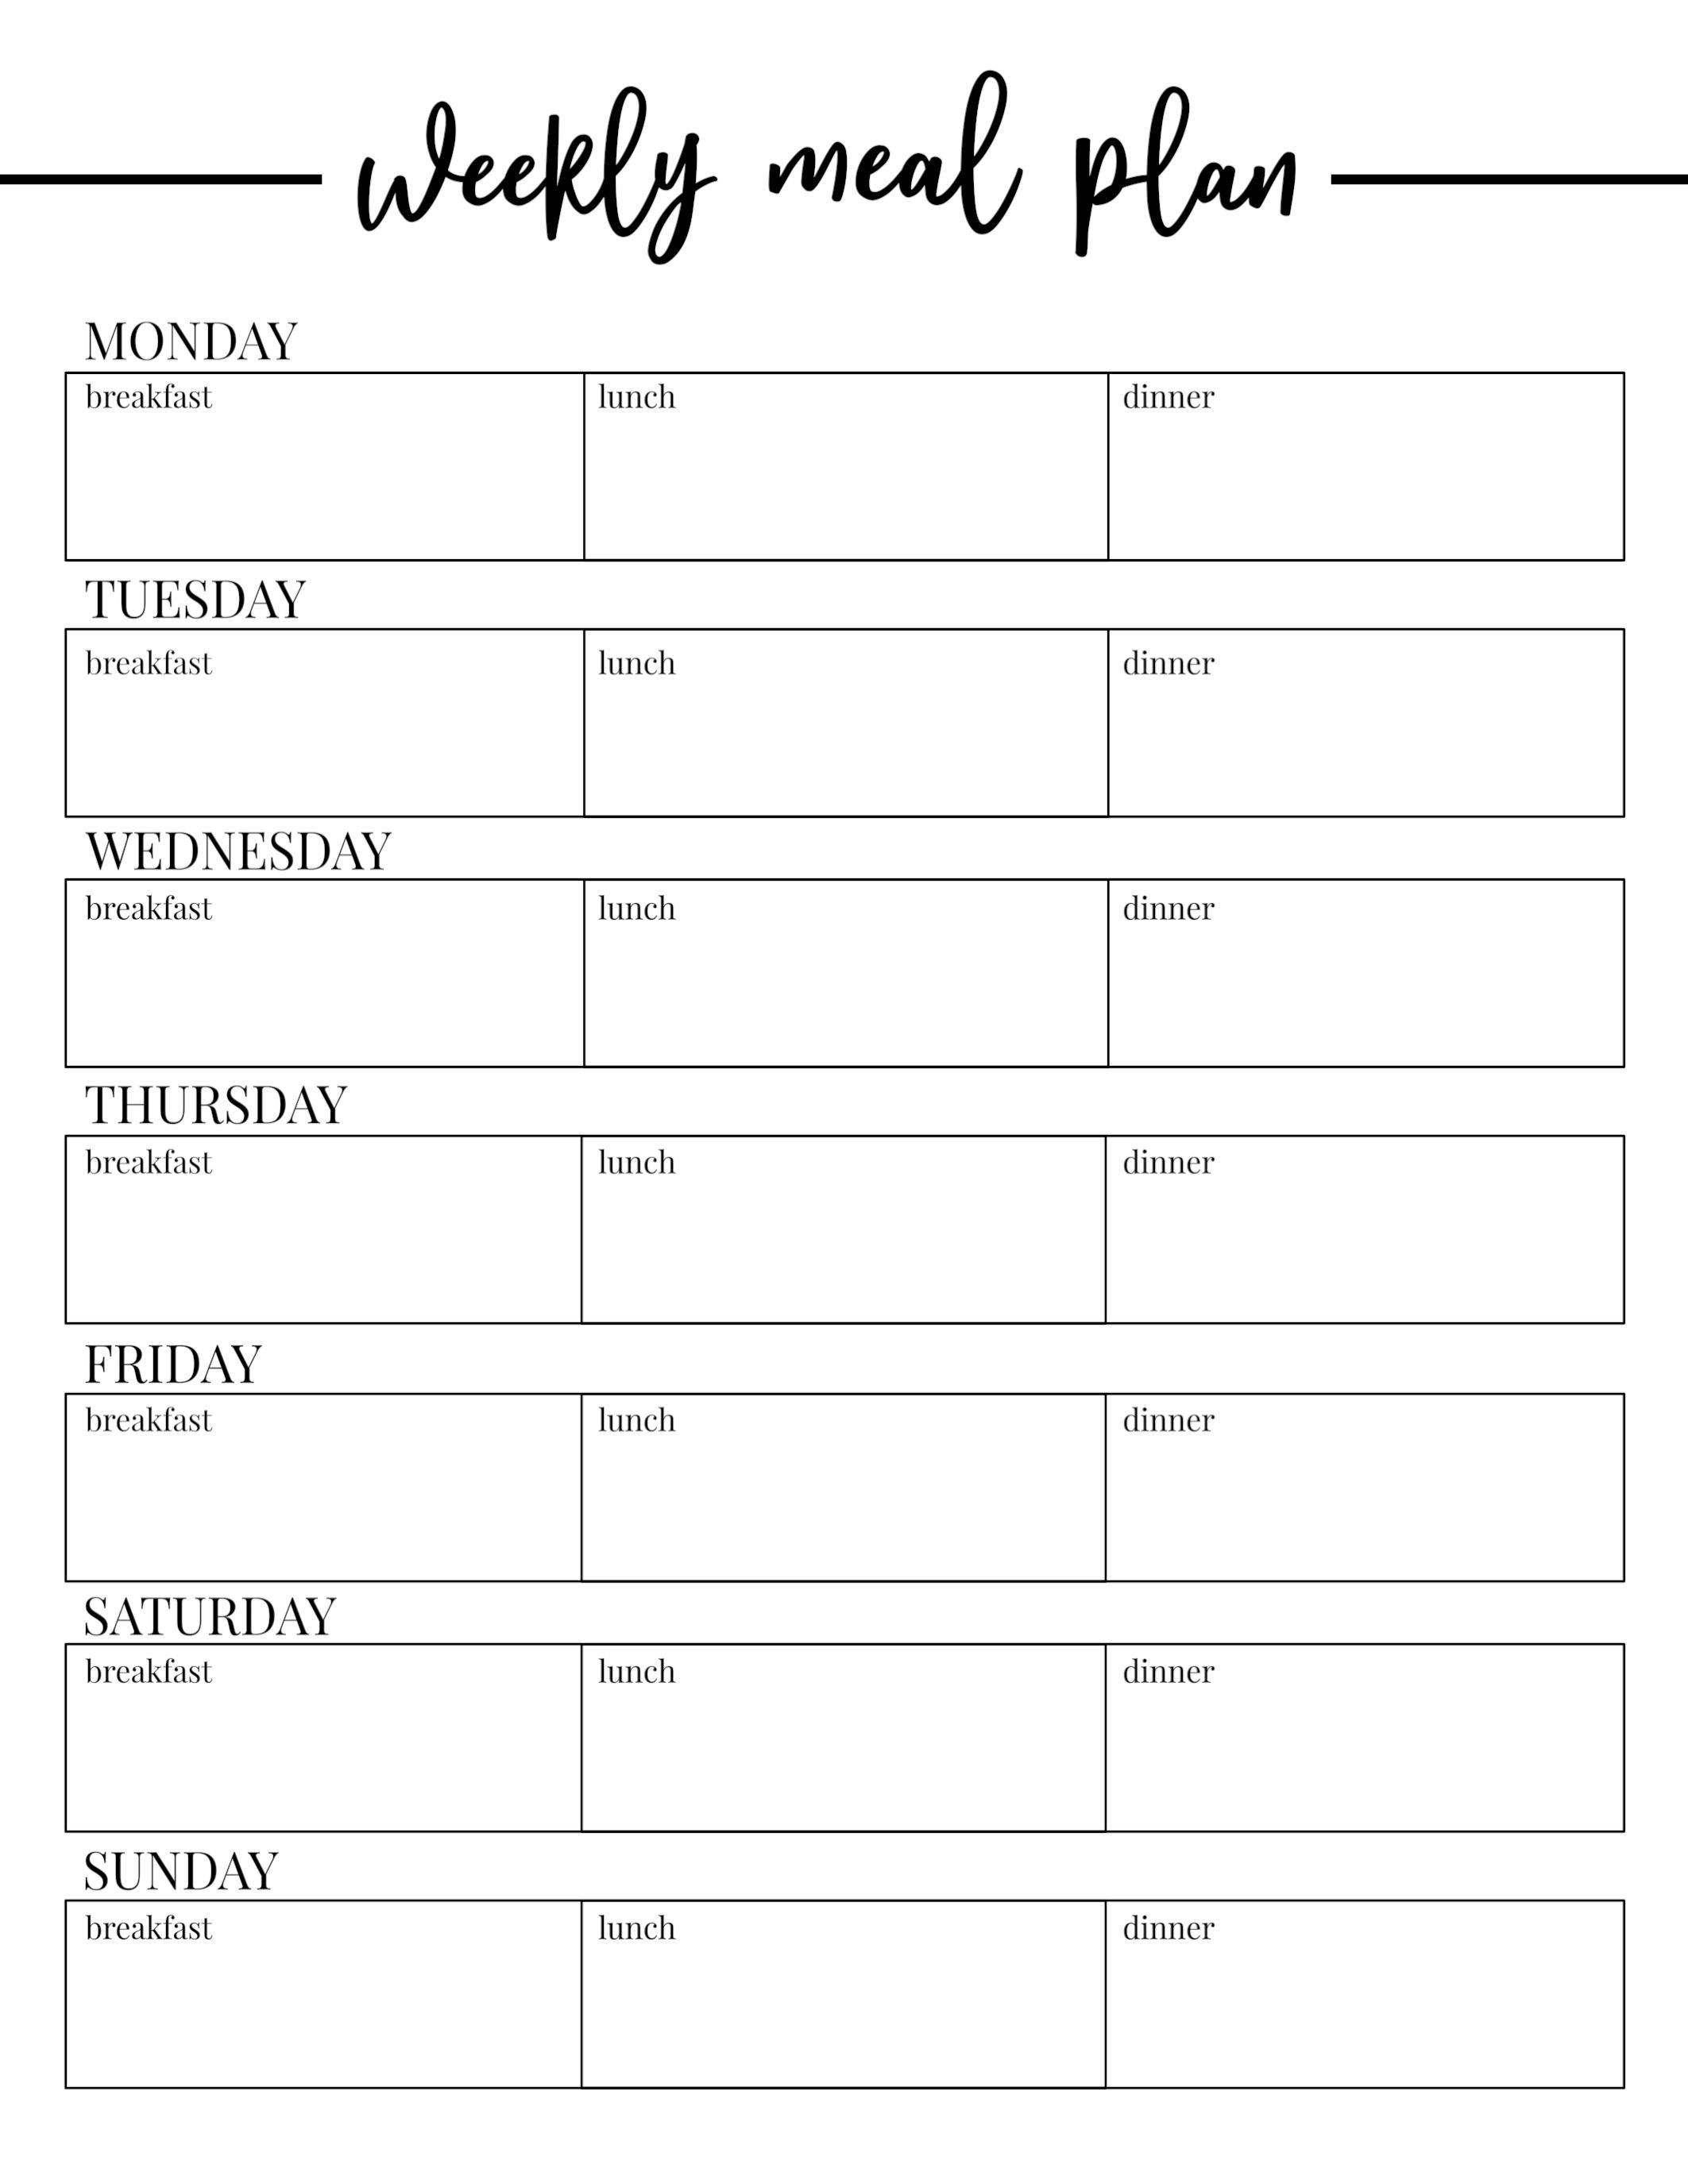 003 Daily Meal Plan Template Weekly Phenomenal Ideas Eating